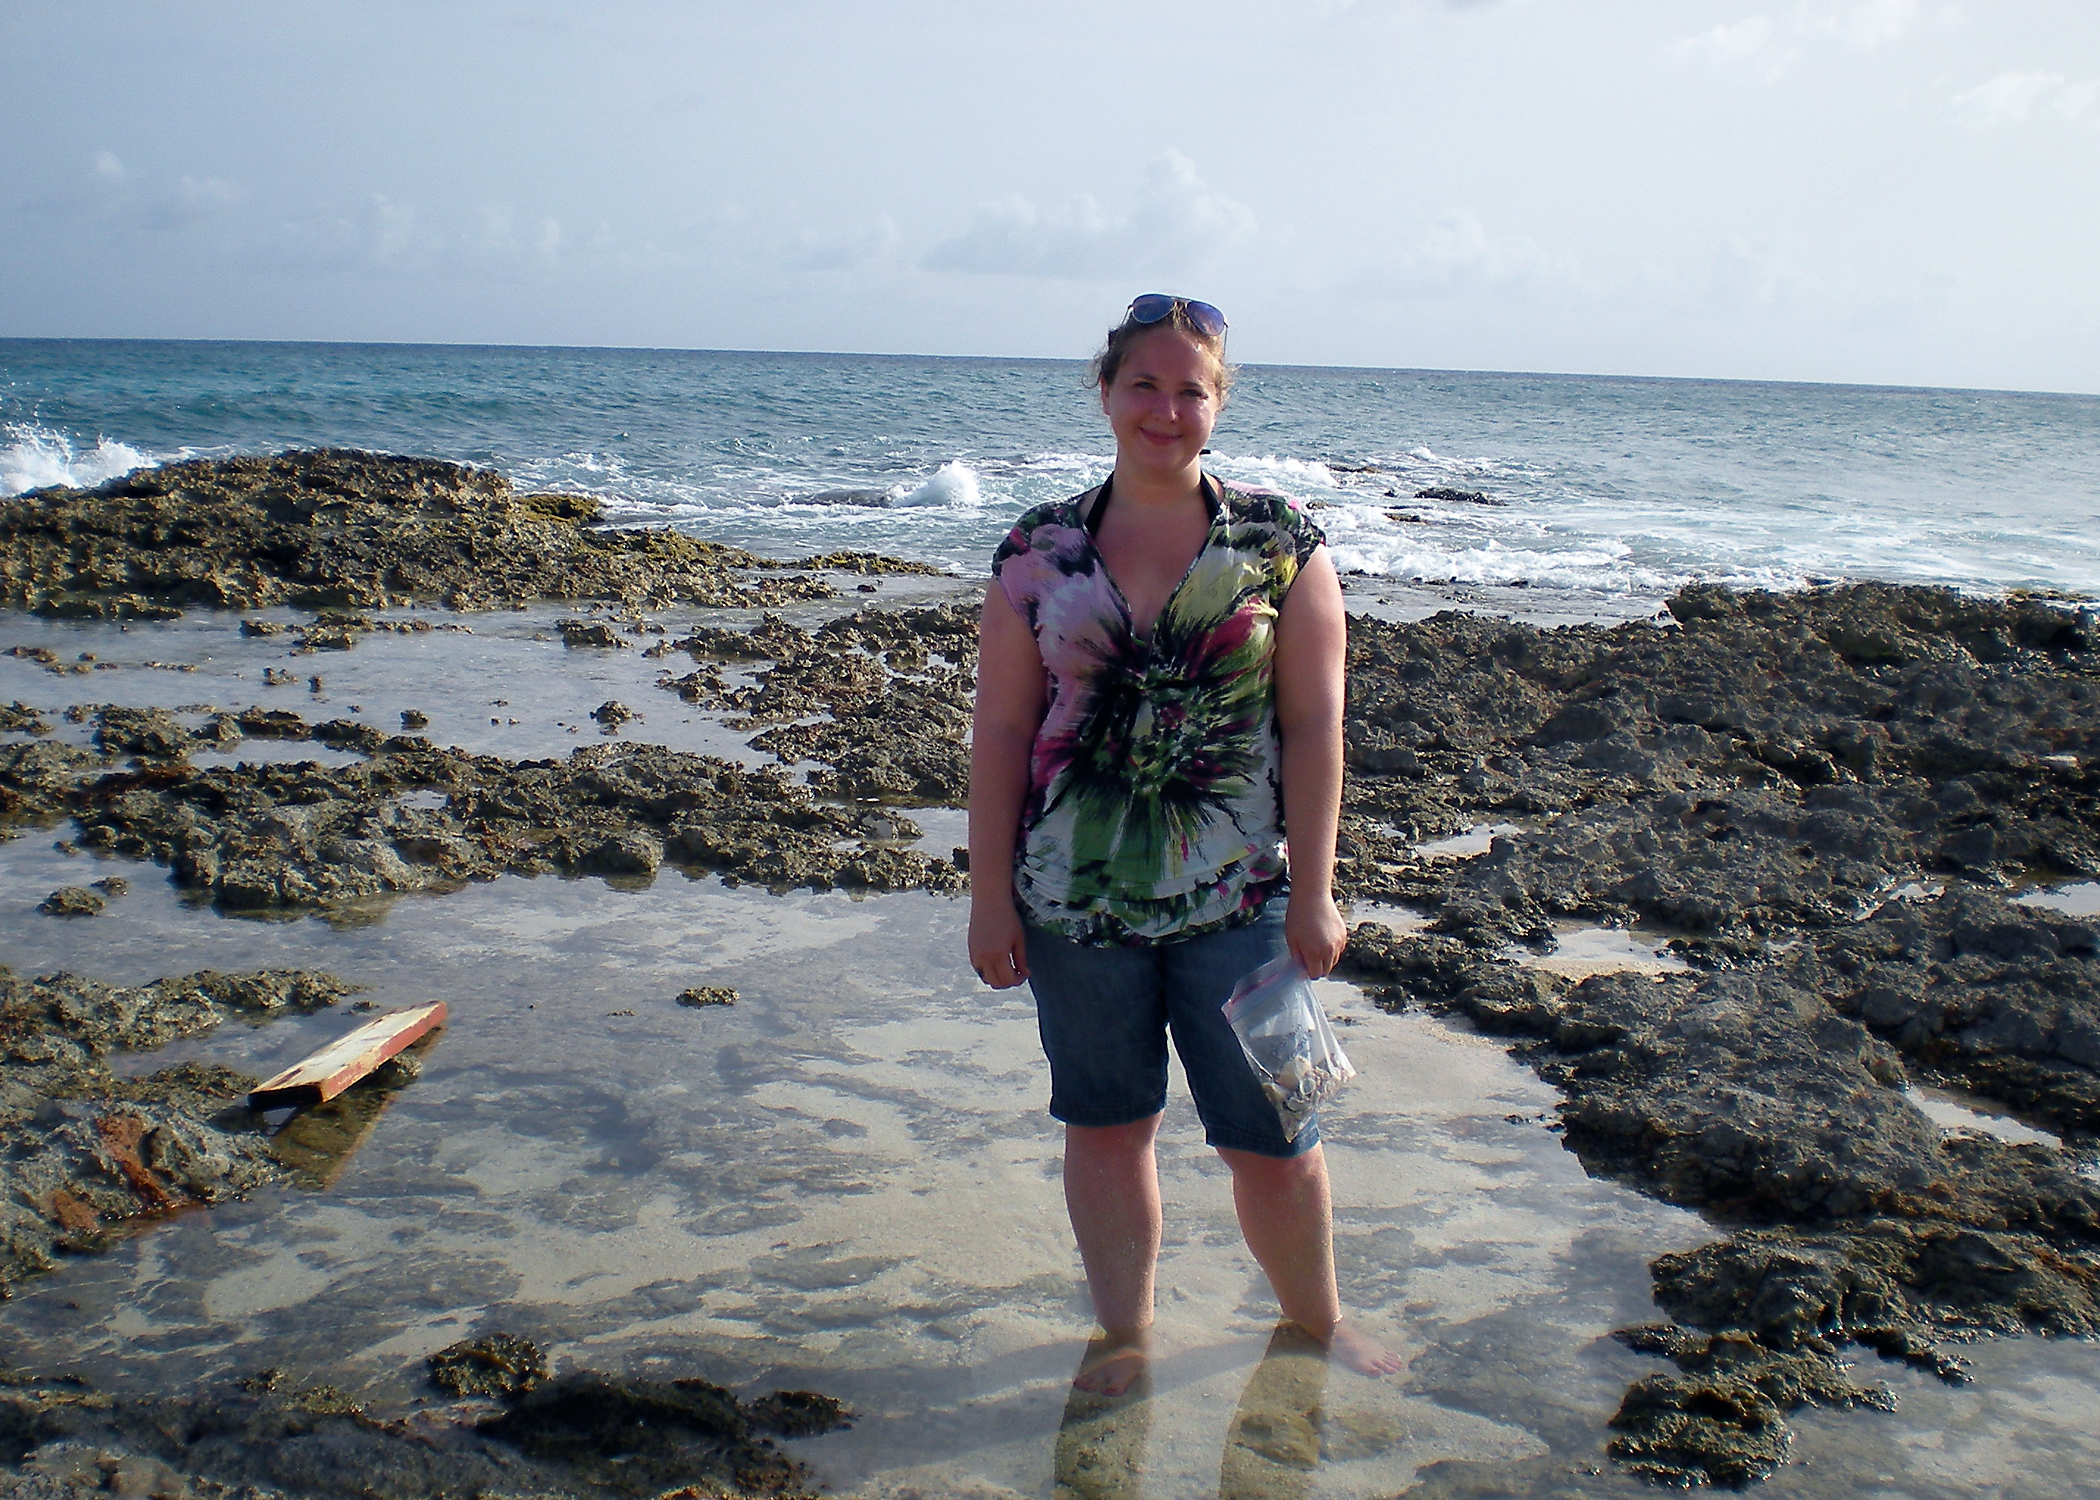 July 2014, in St. Martin - looking for inspiration shells in tide pools.